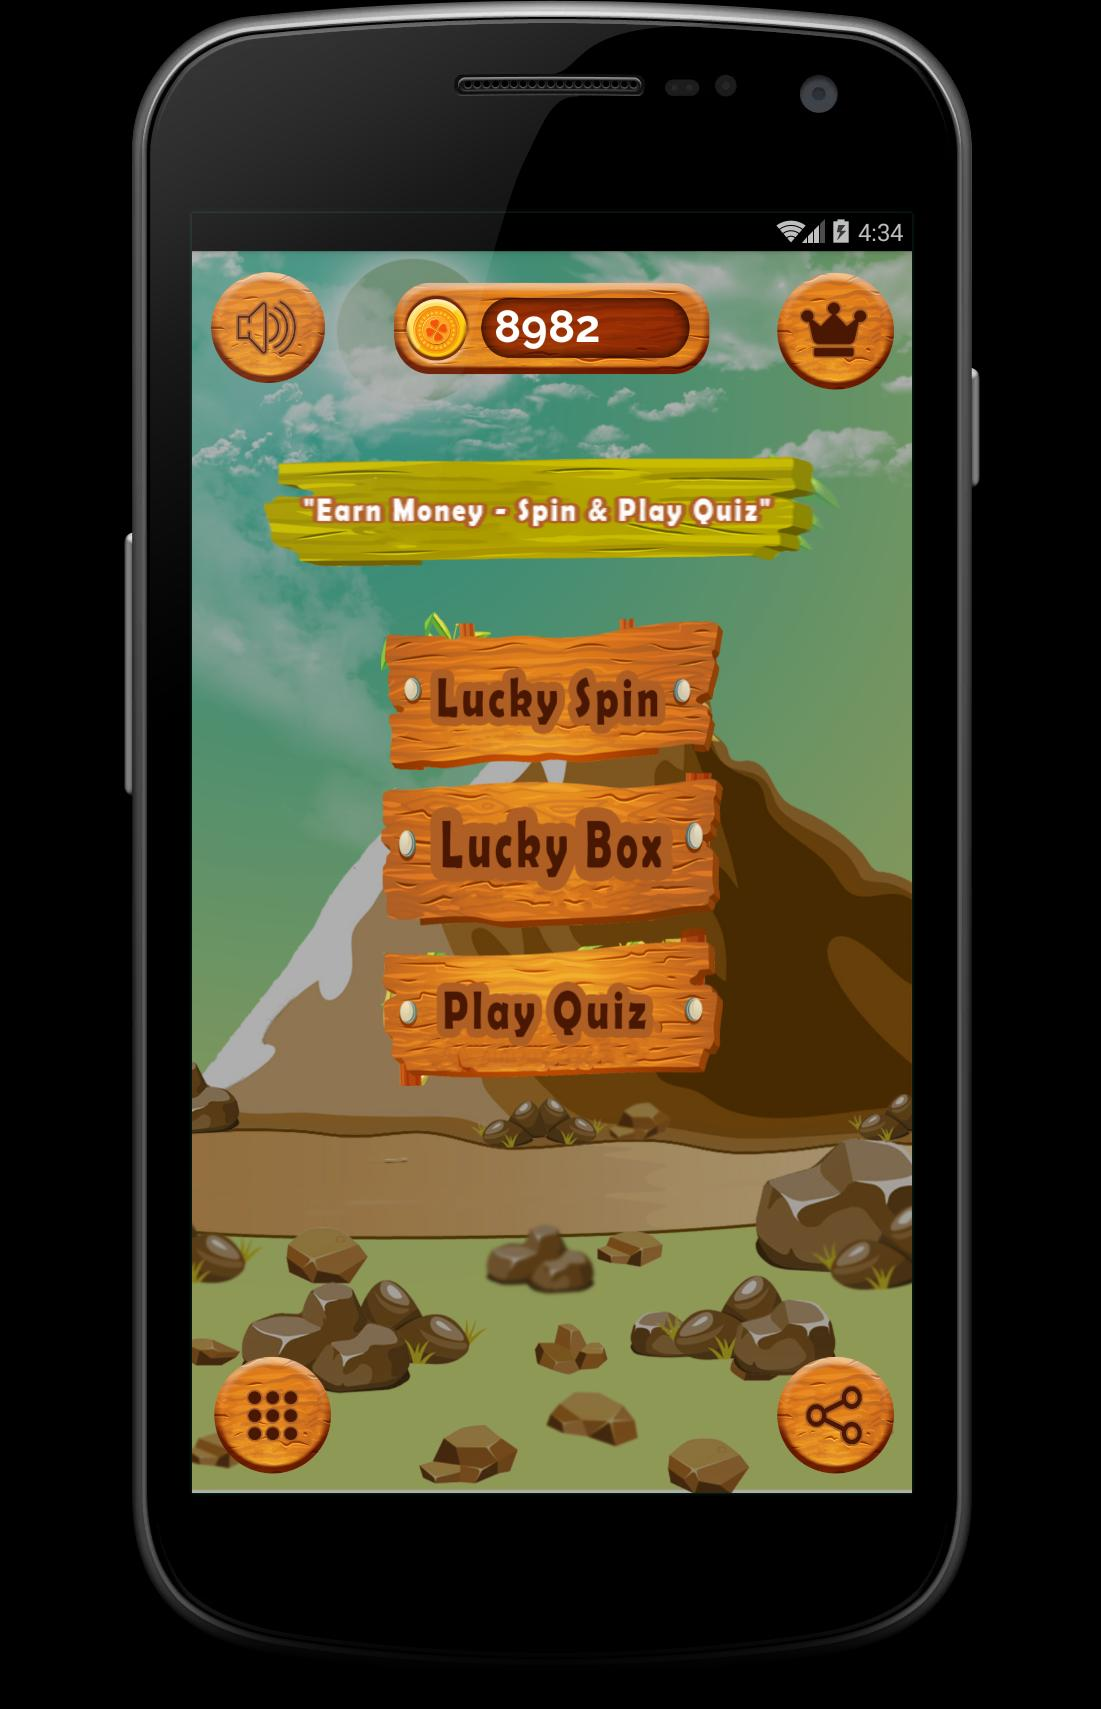 Earn Money - Spin & Play Quiz for Android - APK Download